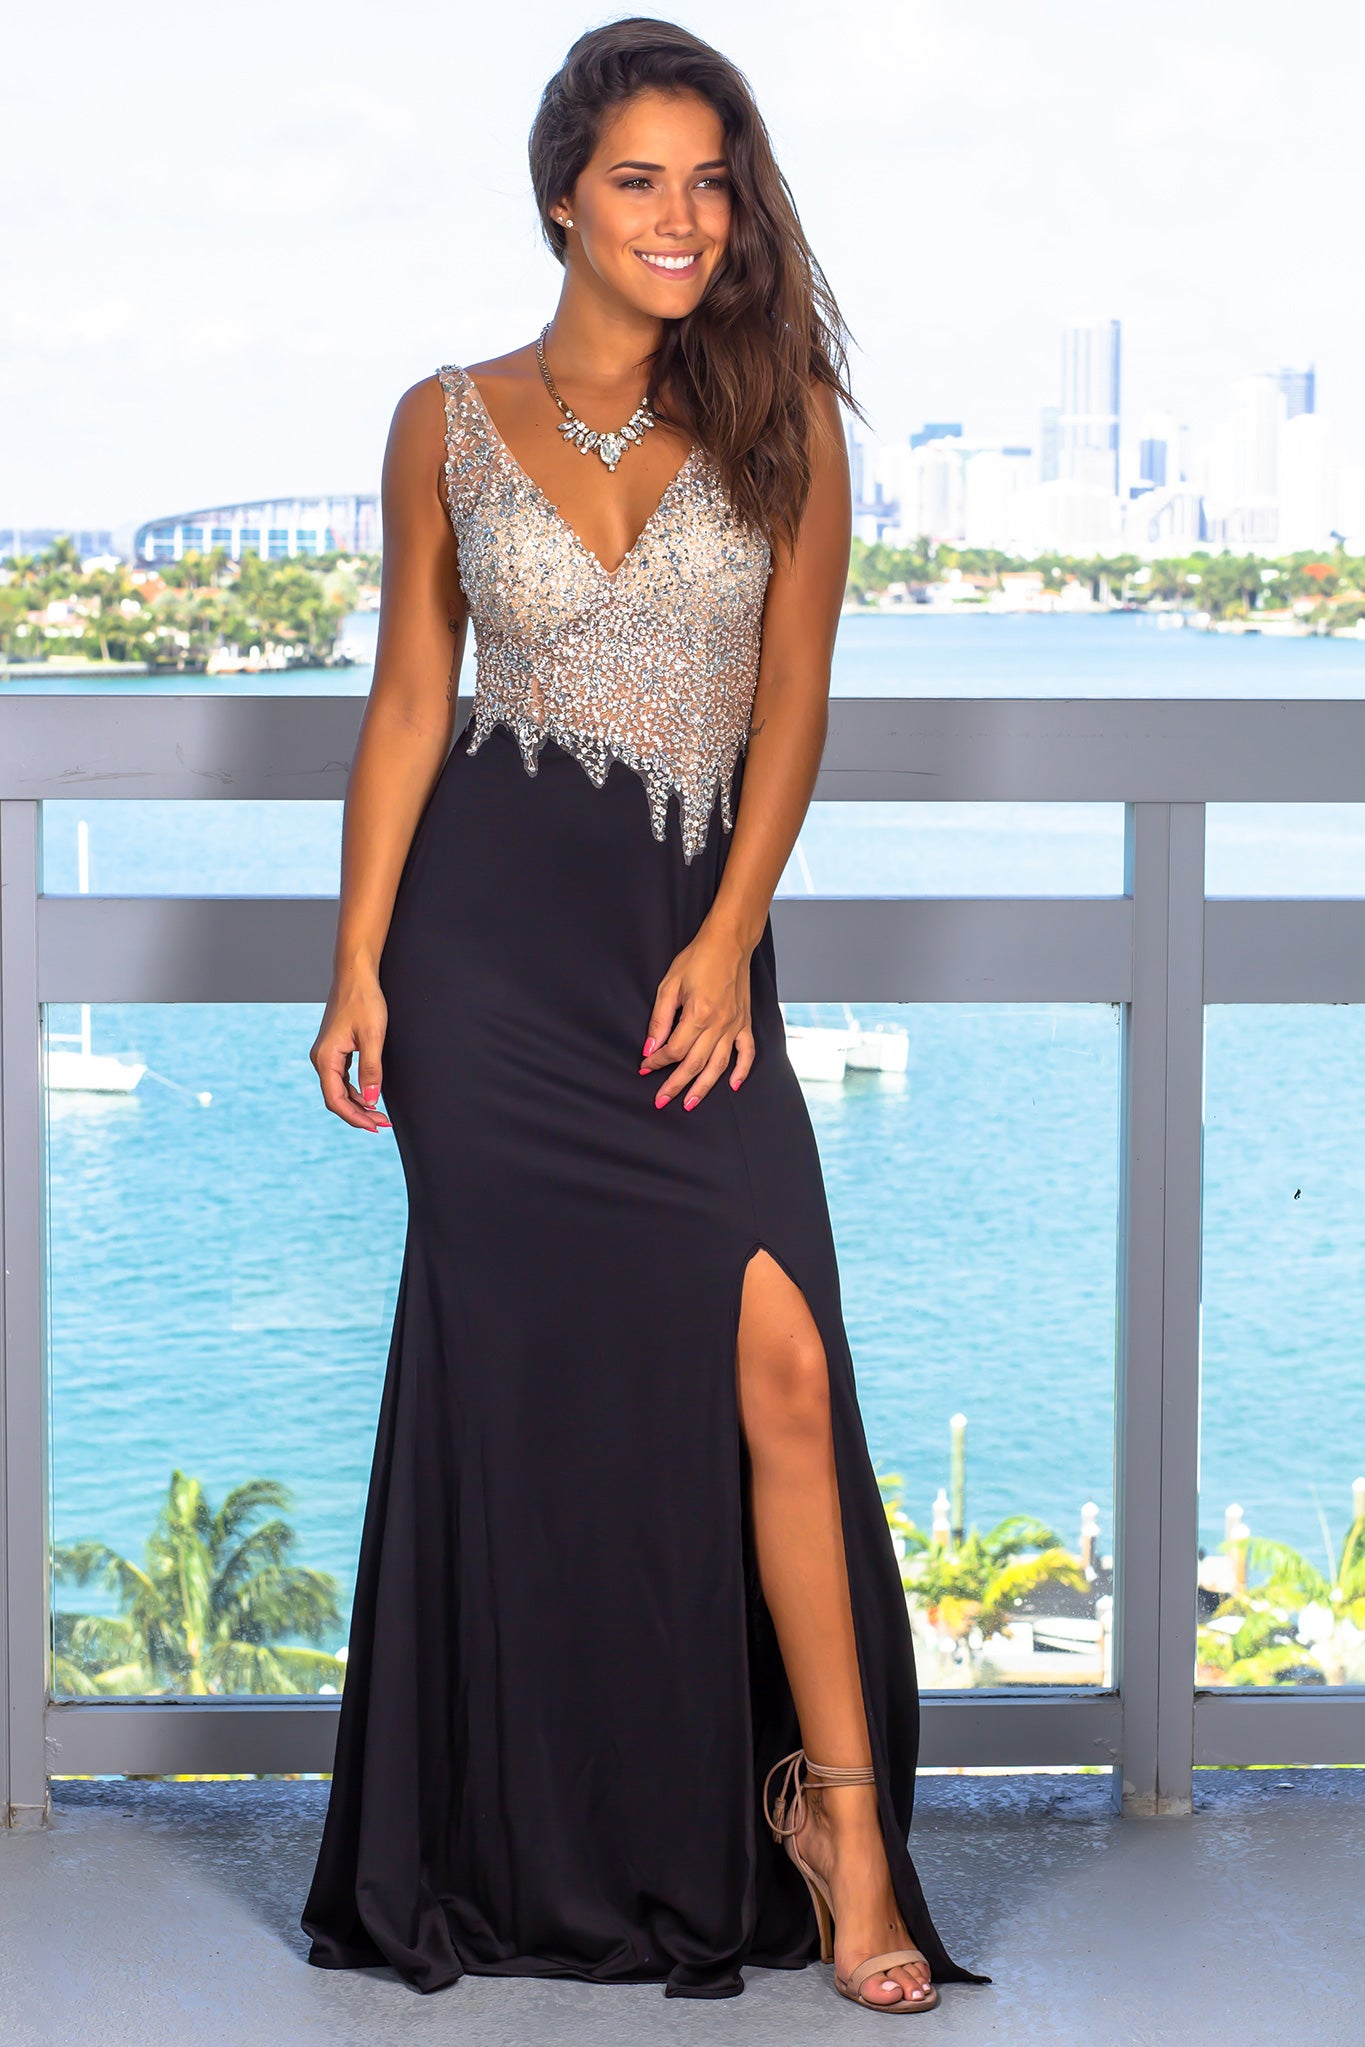 Black and Nude Jeweled Top Maxi Dress with Open Back